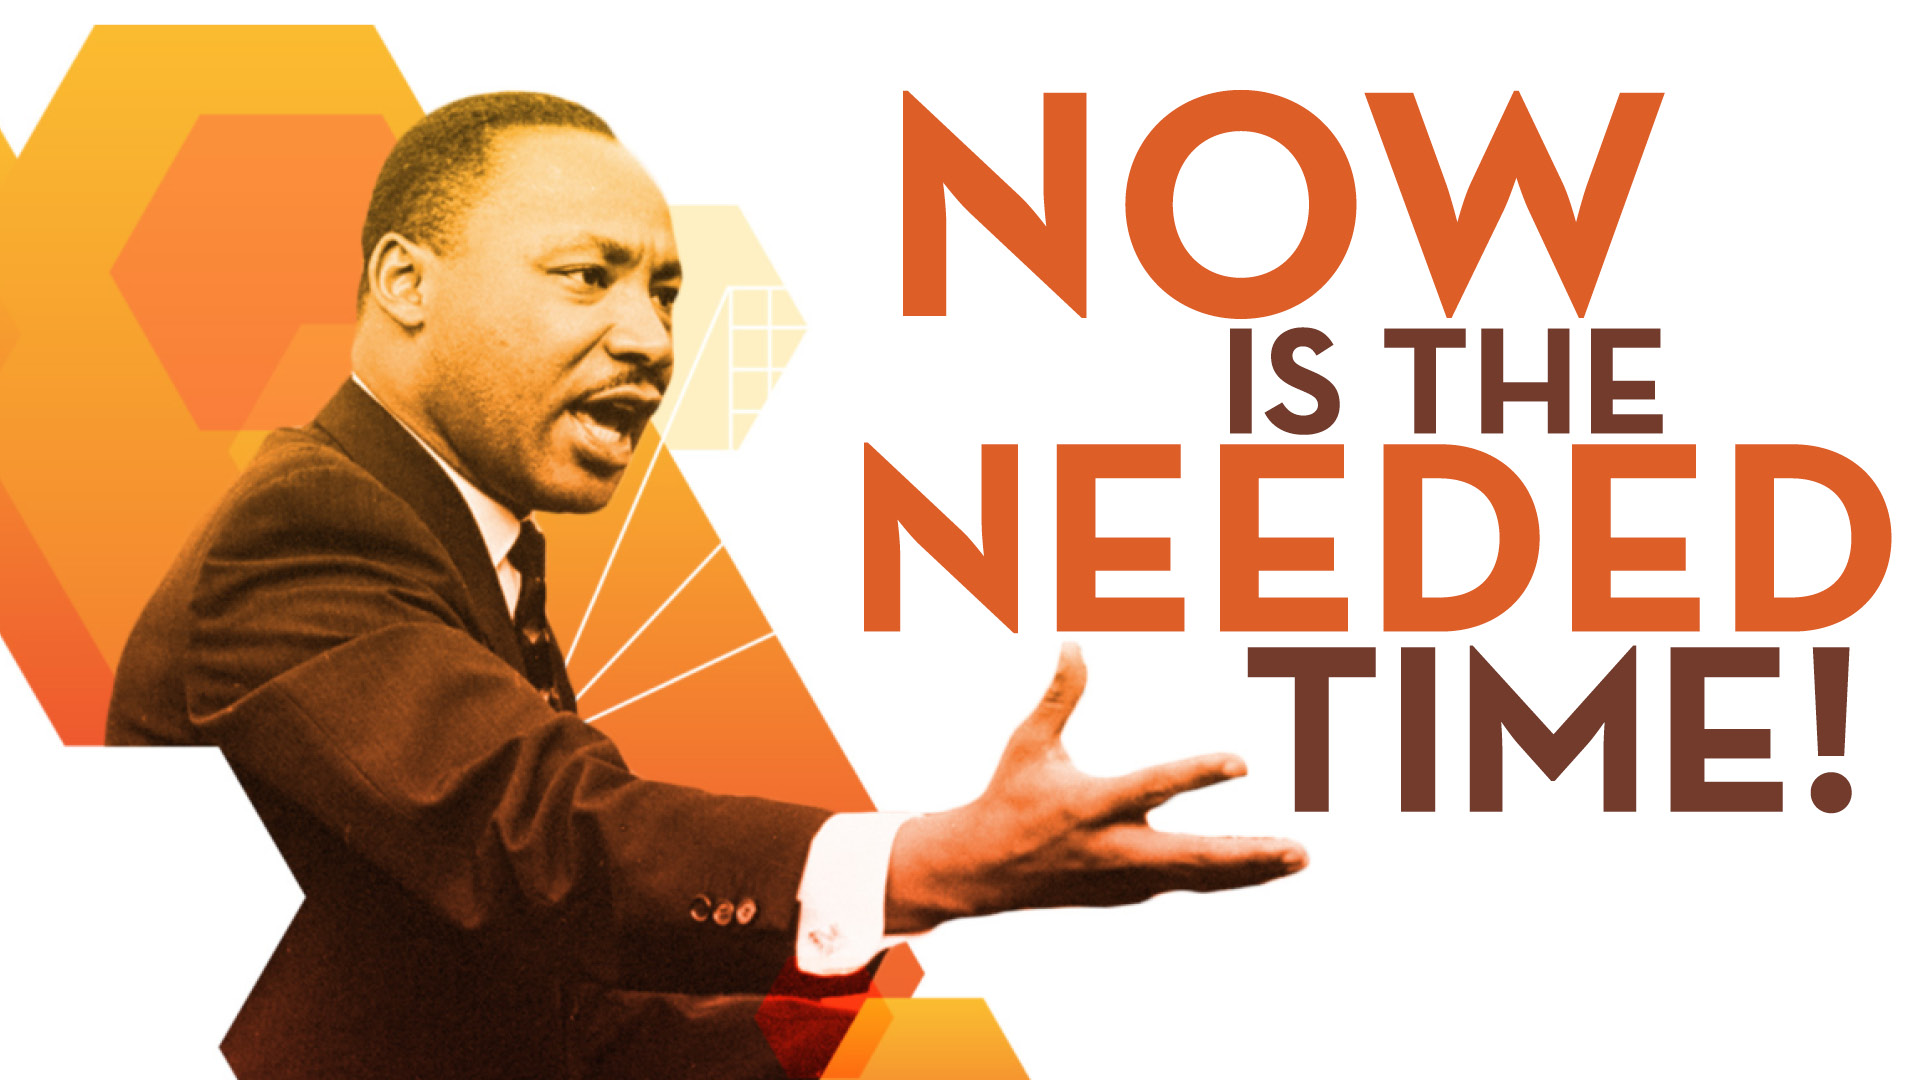 Dr. Martin Luther King, Jr. - Now is the needed time!